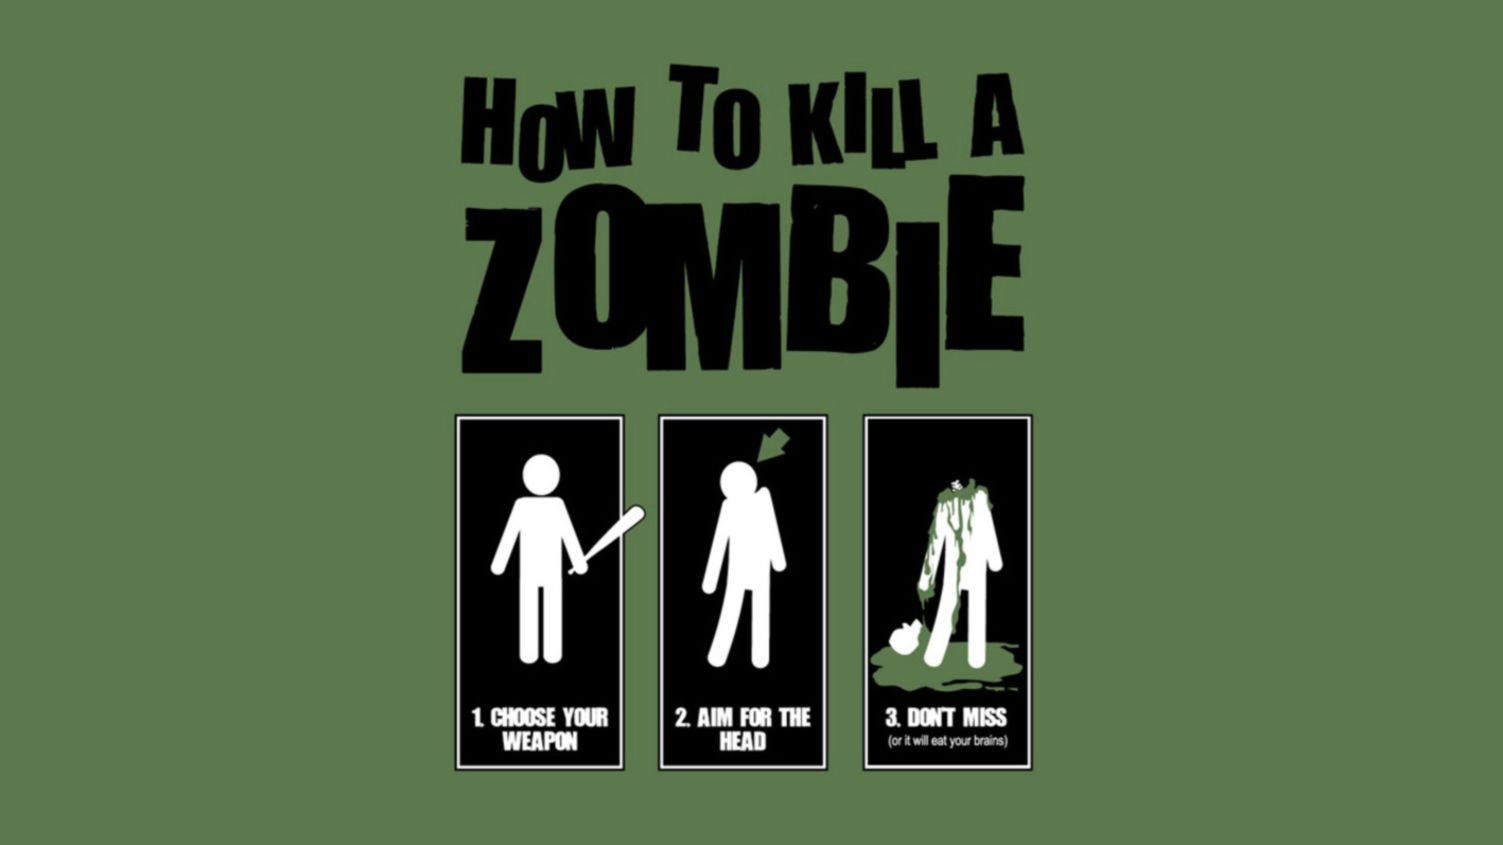 Download free HD Funny Zombie 1080p Wallpaper, image